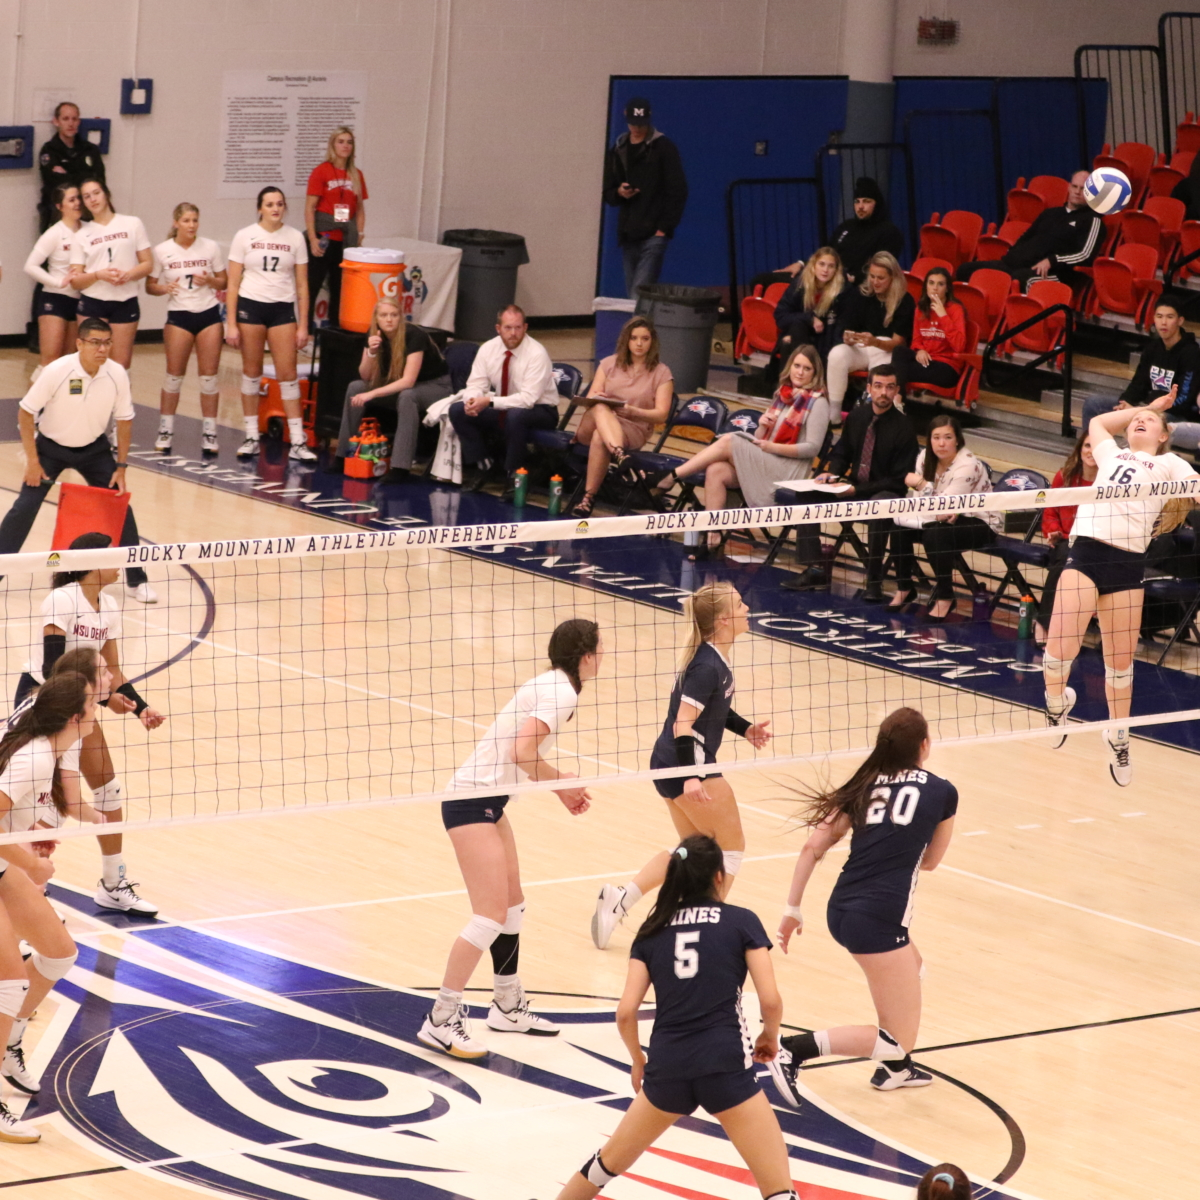 Slide Show Loss To Mines Costs Volleyball A Chance At Conference Greatness